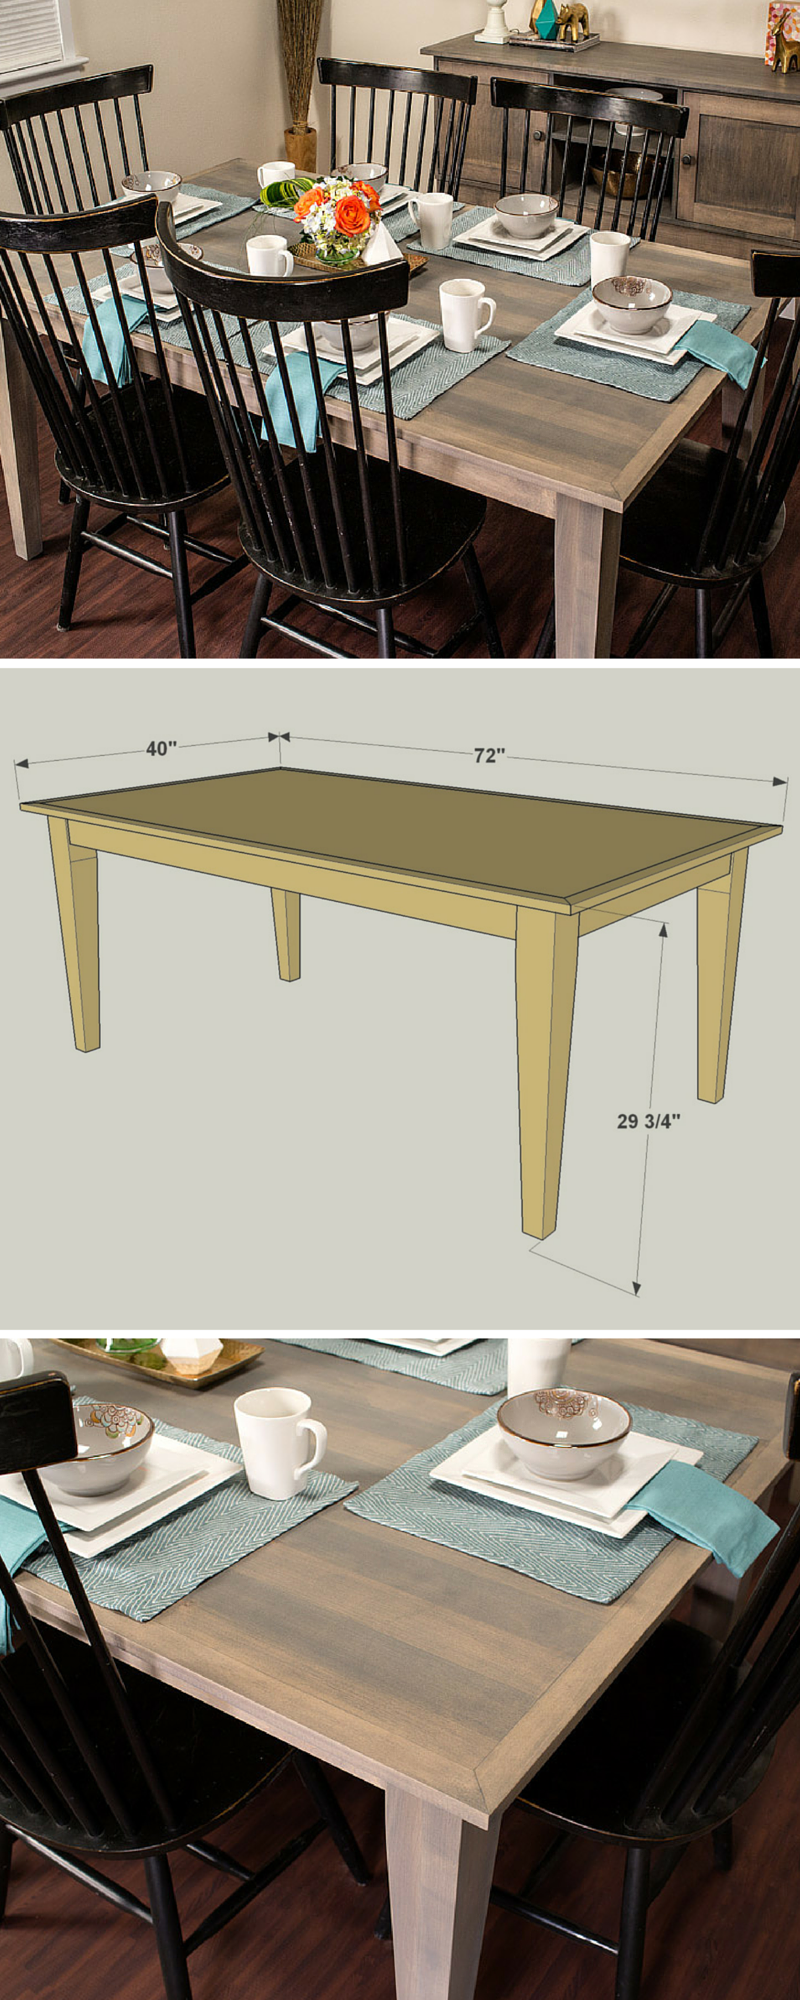 Do It Yourself Divas Diy Kitchen Table Makeover: How To Build A DIY Farmhouse Dining Table